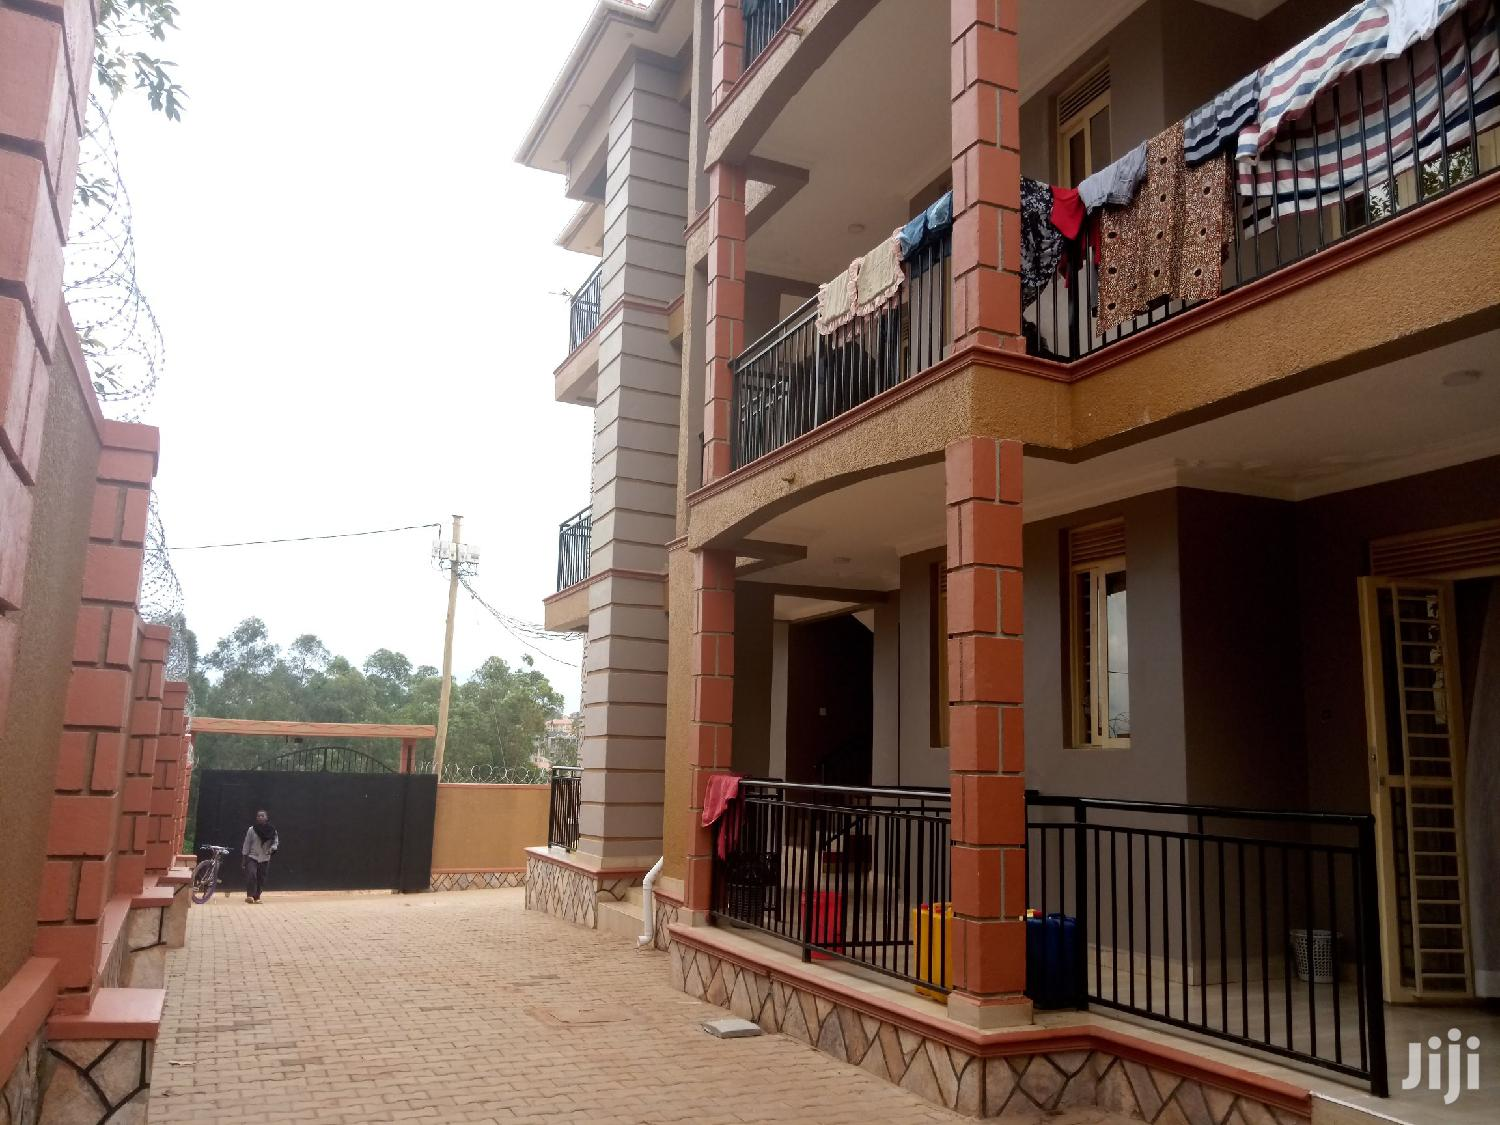 Kyanja 9 Units For Sale   Houses & Apartments For Sale for sale in Kampala, Central Region, Uganda